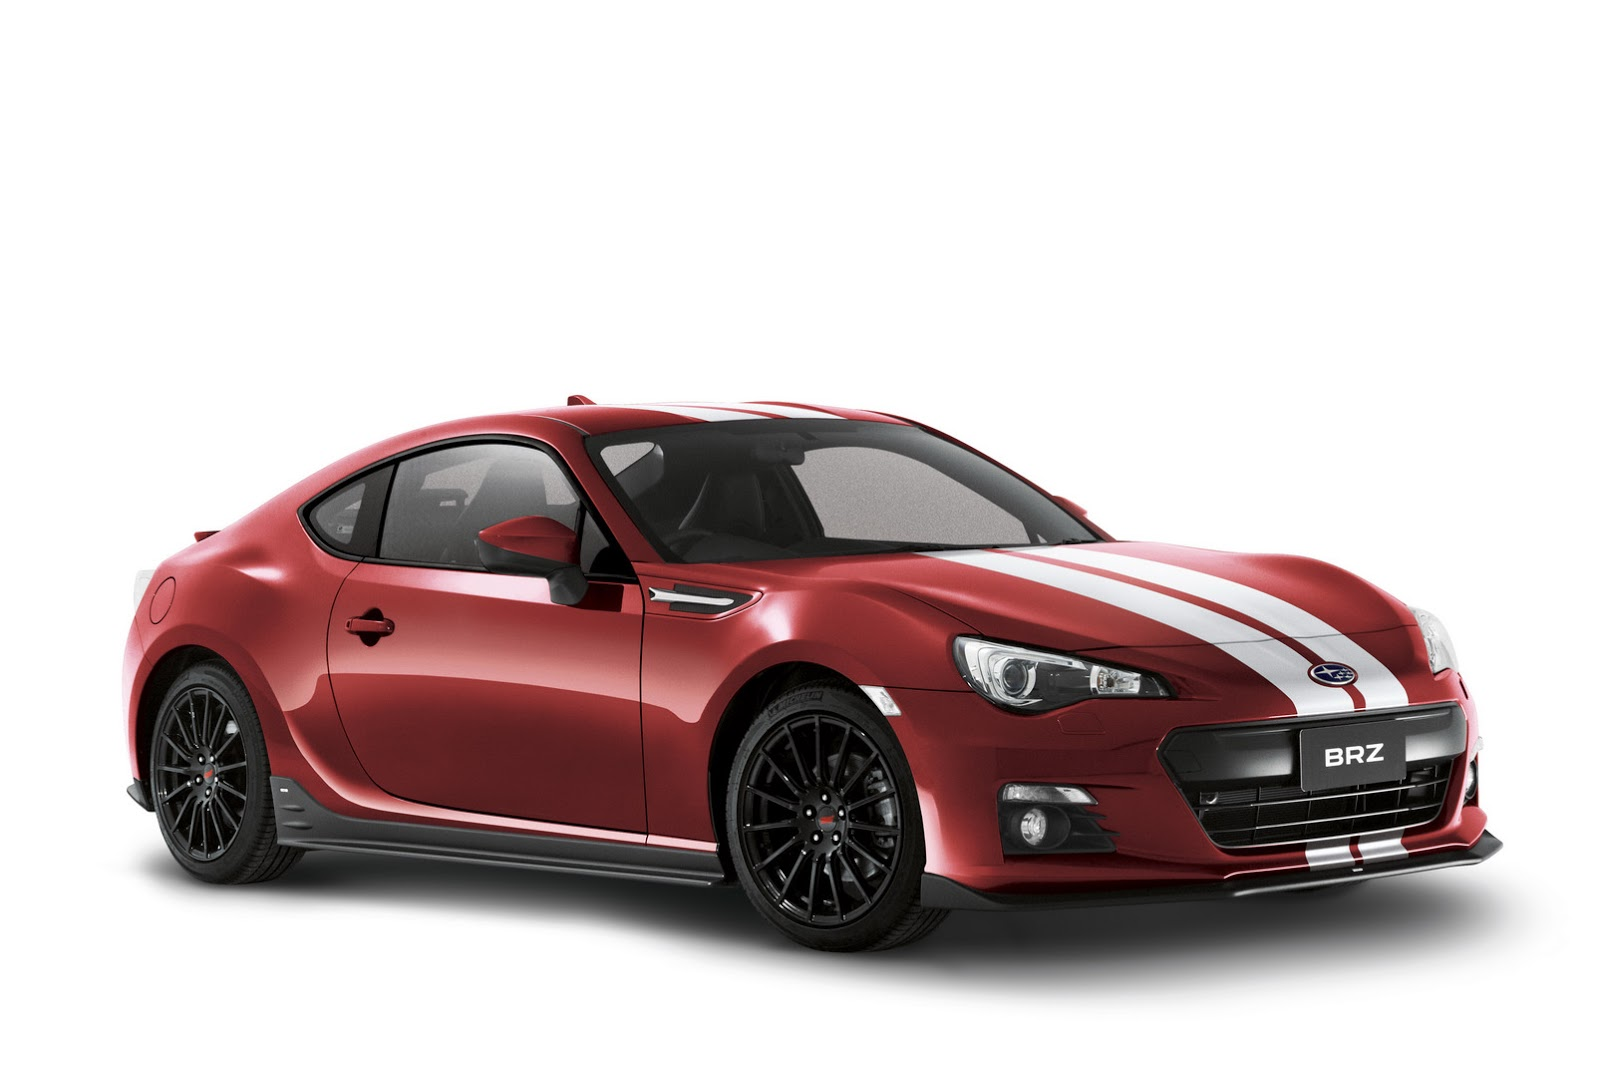 Gt86 Car Wallpaper Subaru Gives Brz A Striped Special Edition With Sti Goods